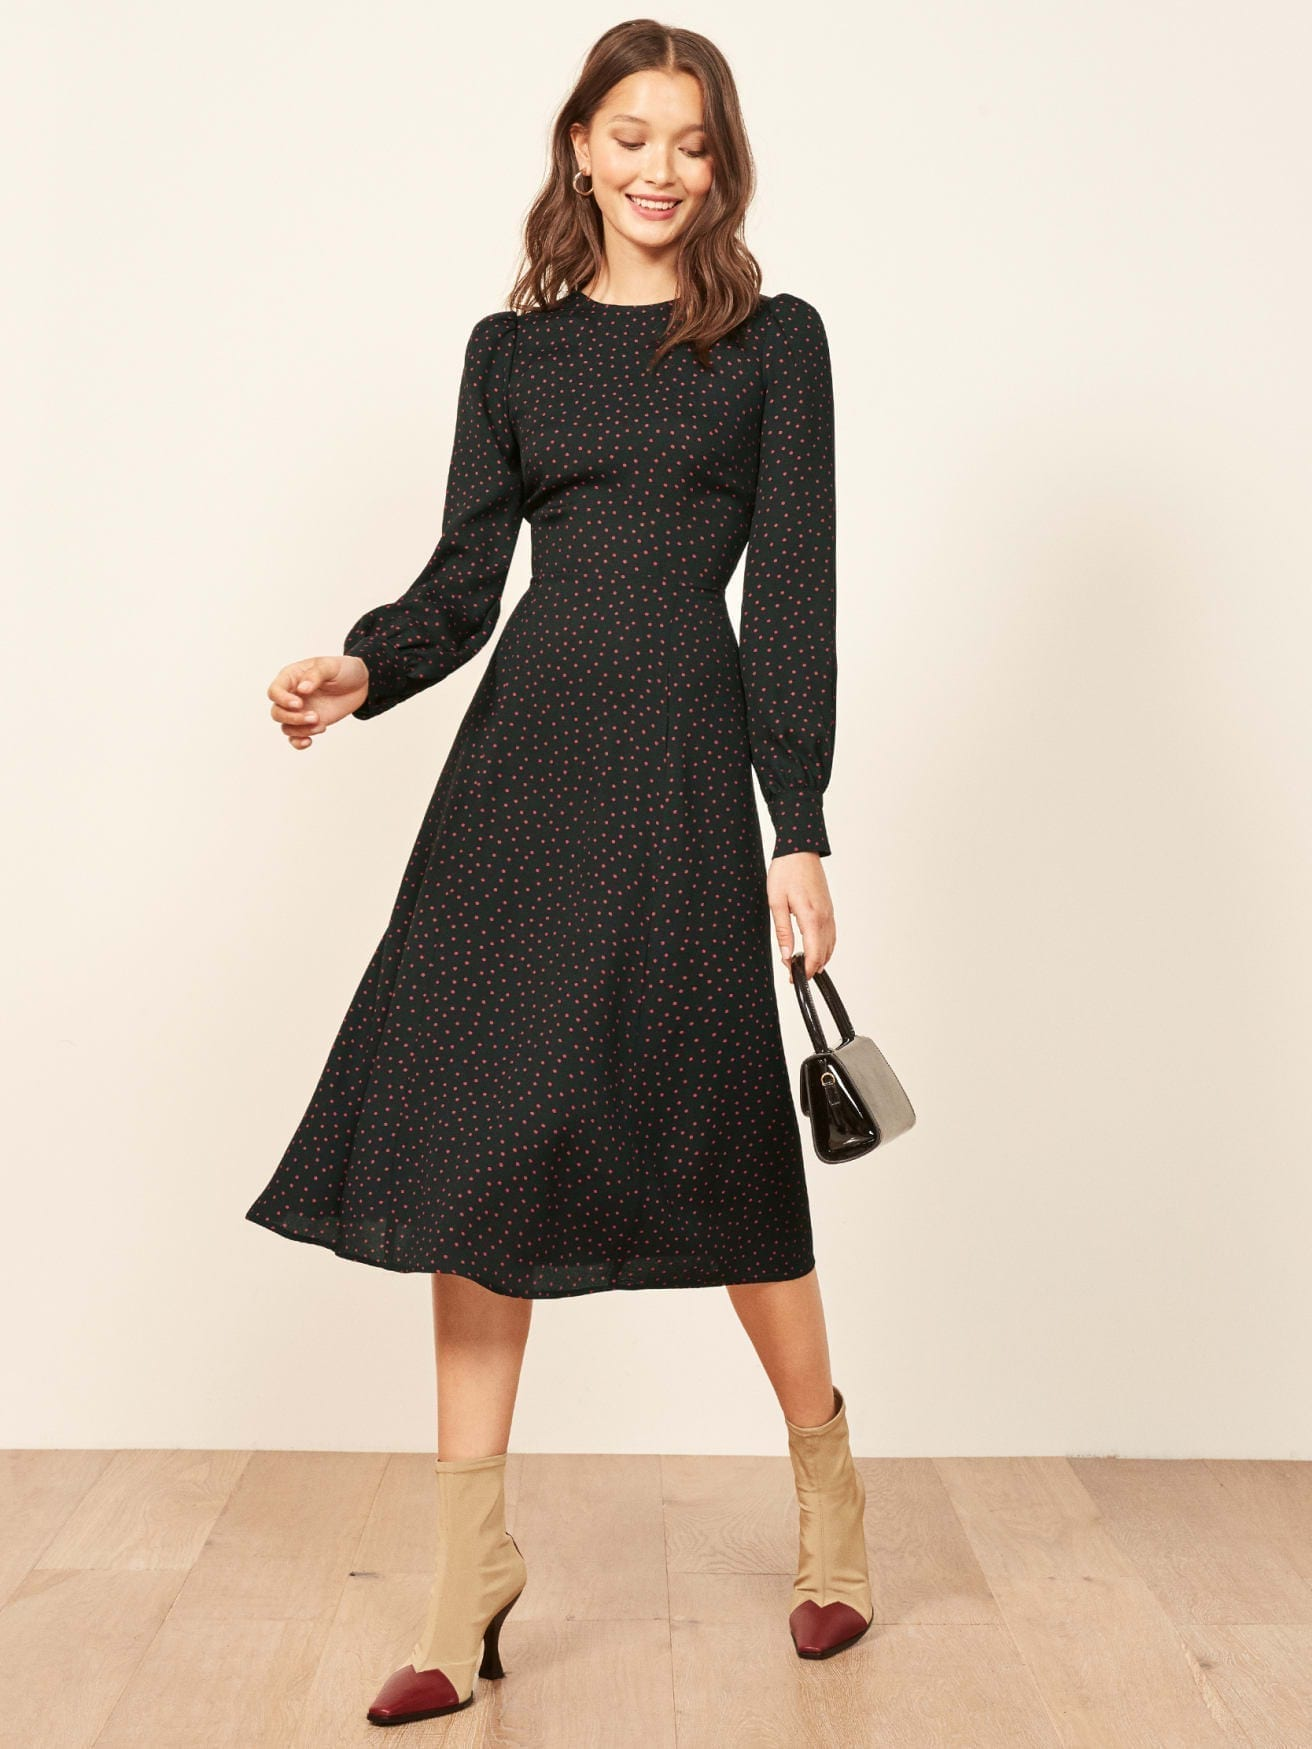 REFORMATION Josephine Black Dress